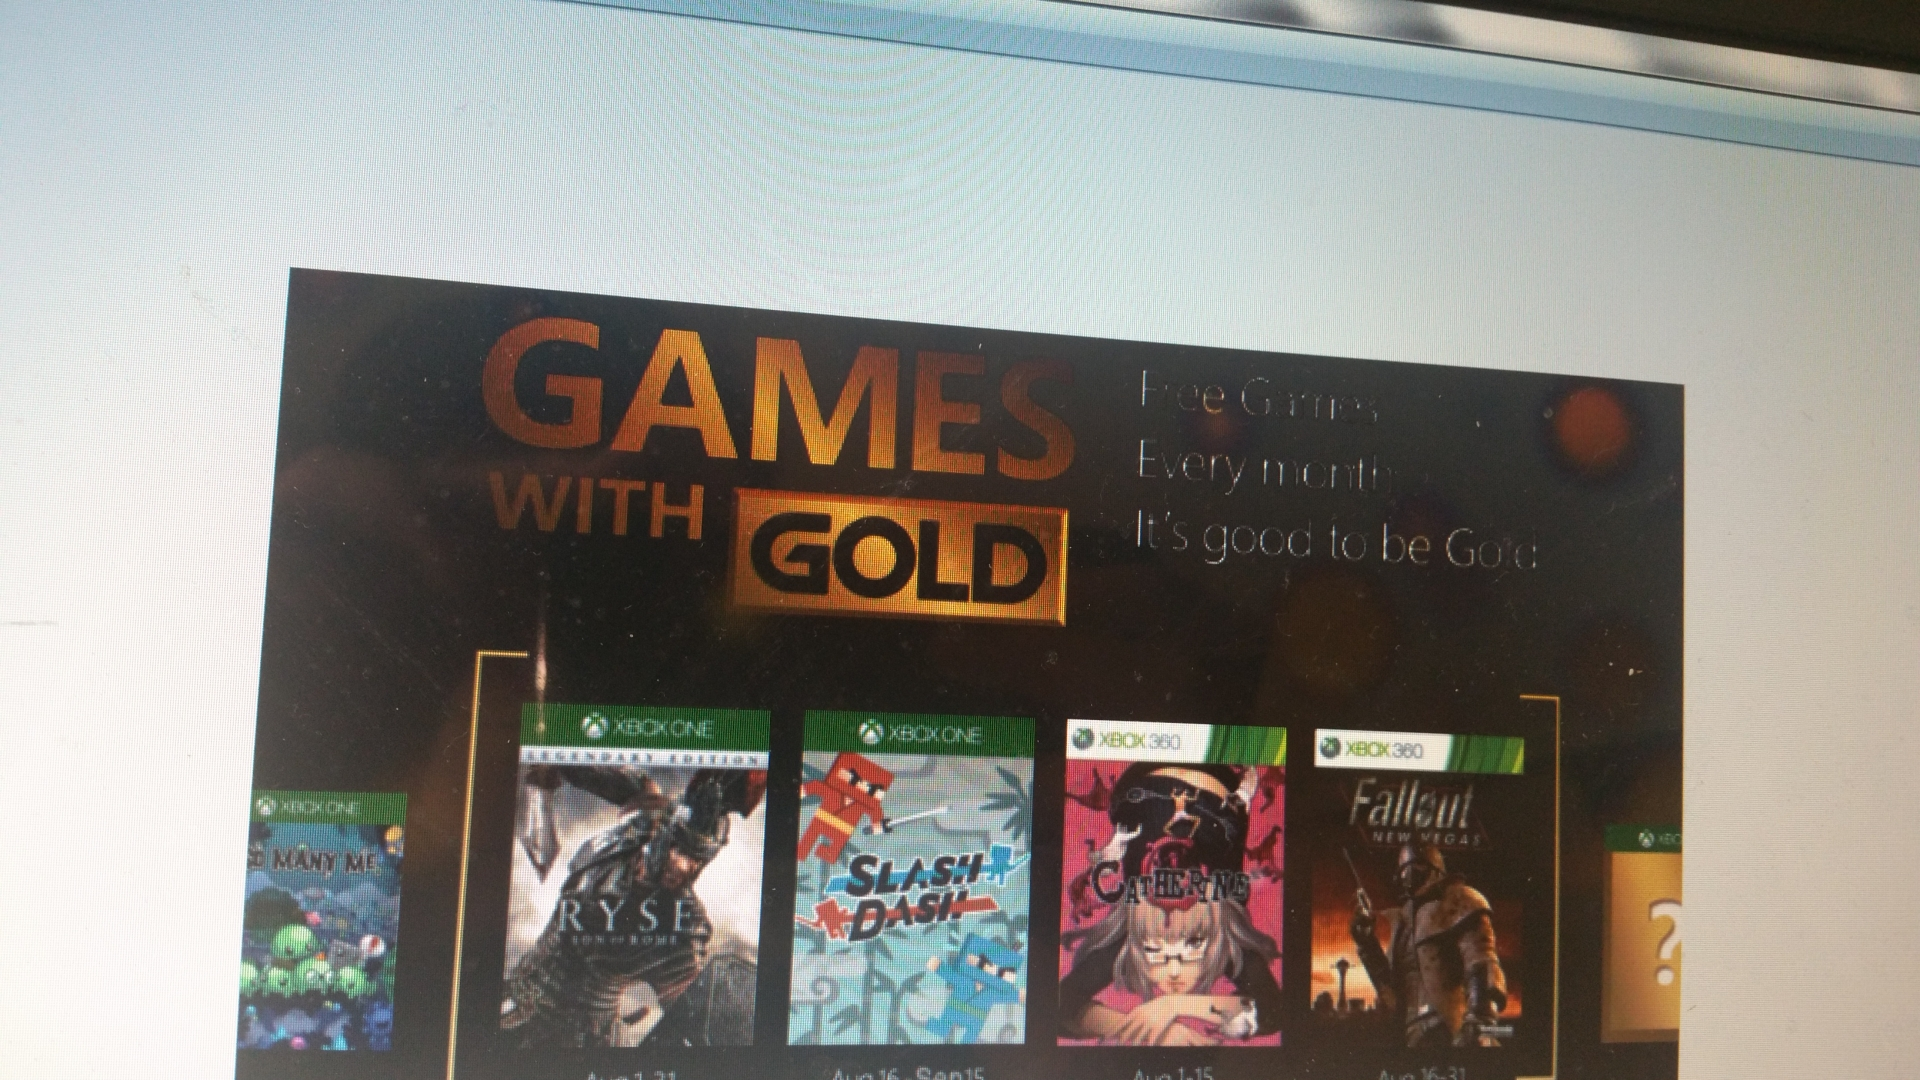 http://www.xboxonefrance.com/uploads/images/jeux/autres/xbox-live-games-with-gold-for-august-2015.jpg